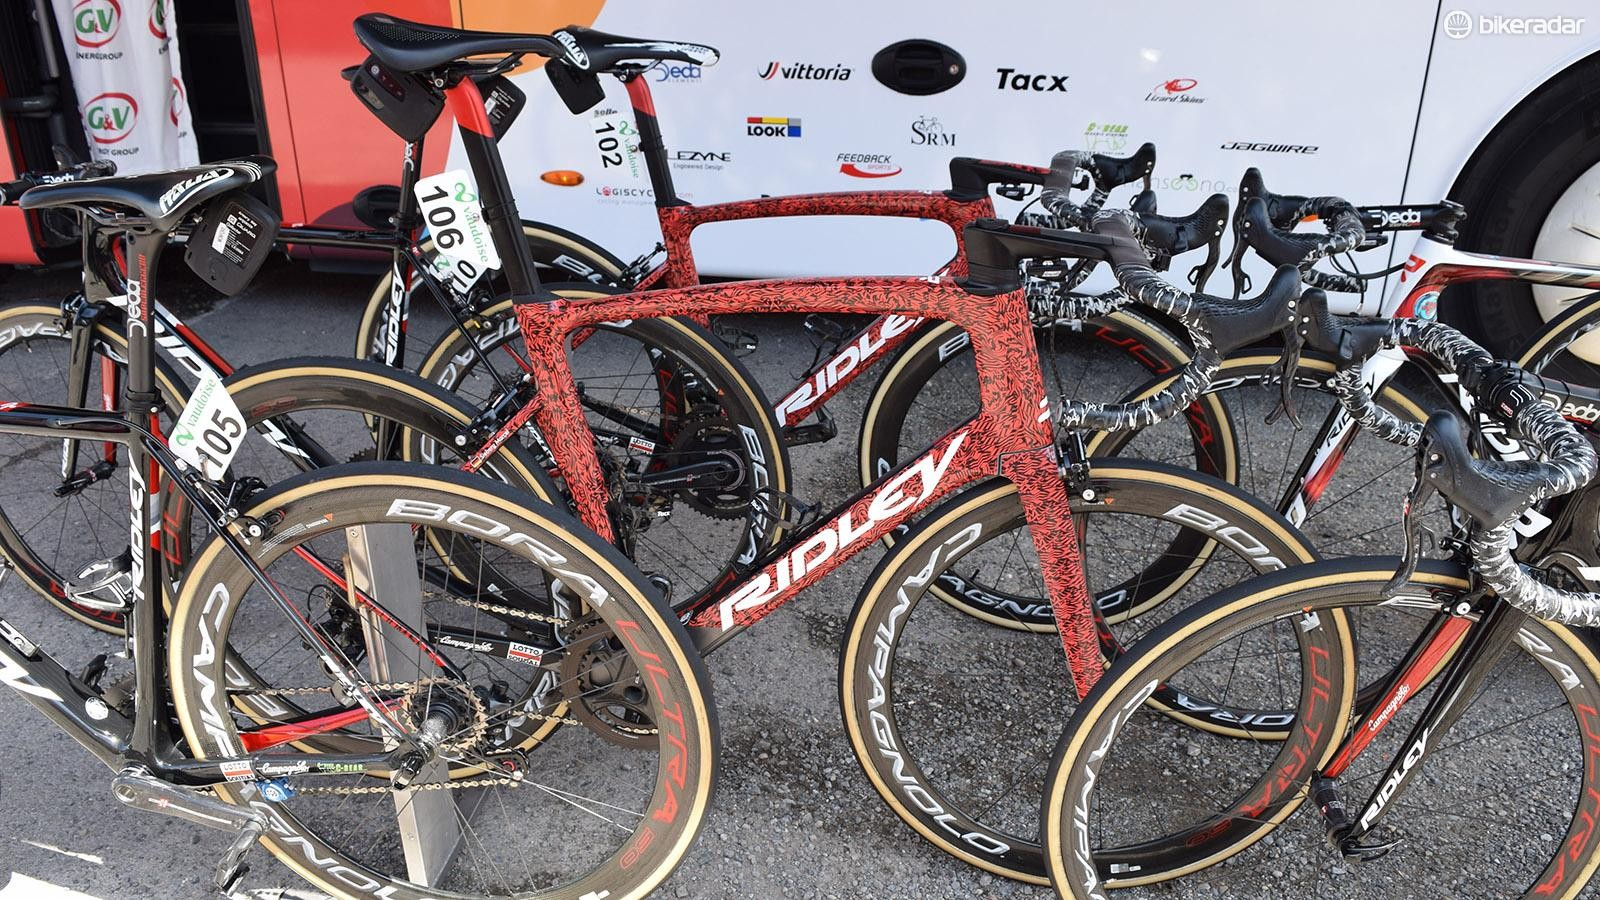 Marcel Sieberg and Andre Greipel raced on the bikes for Stage 2 of the race